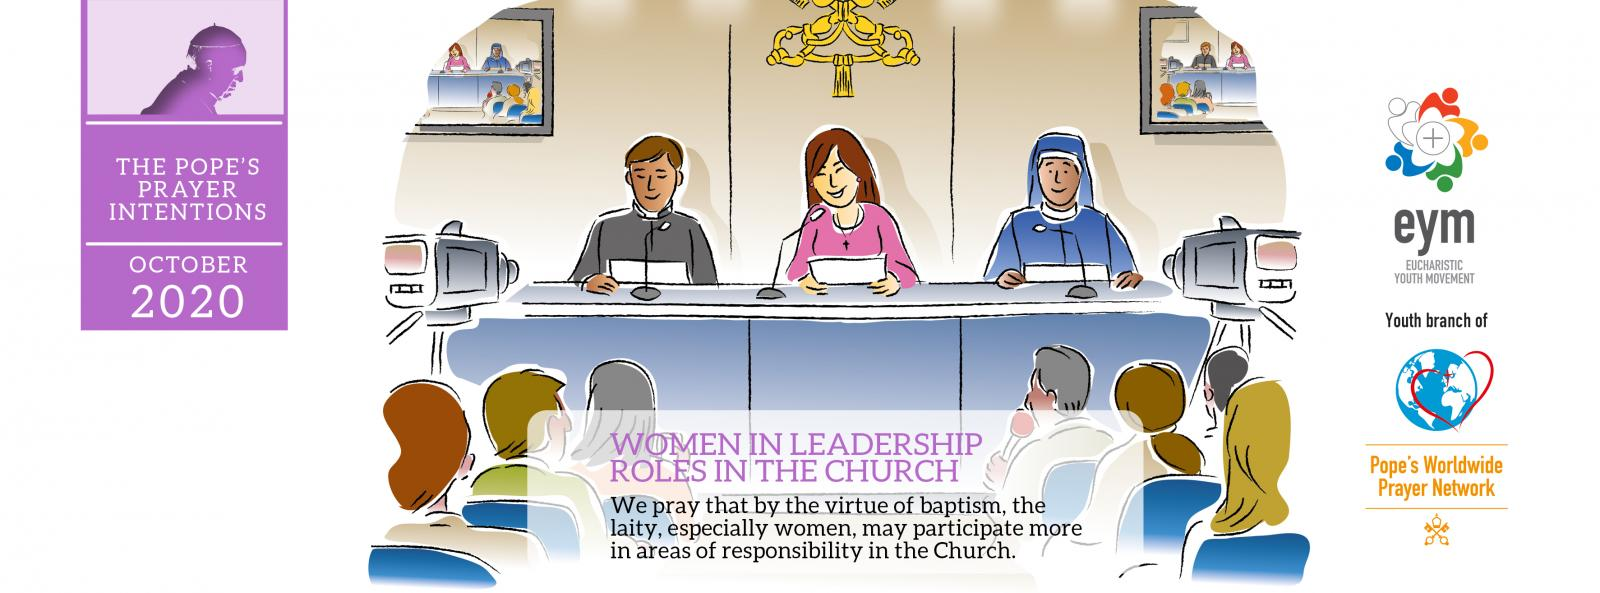 Pope's Prayer Intention for October: Women in leadership roles in the Church - Diocese of Westminster